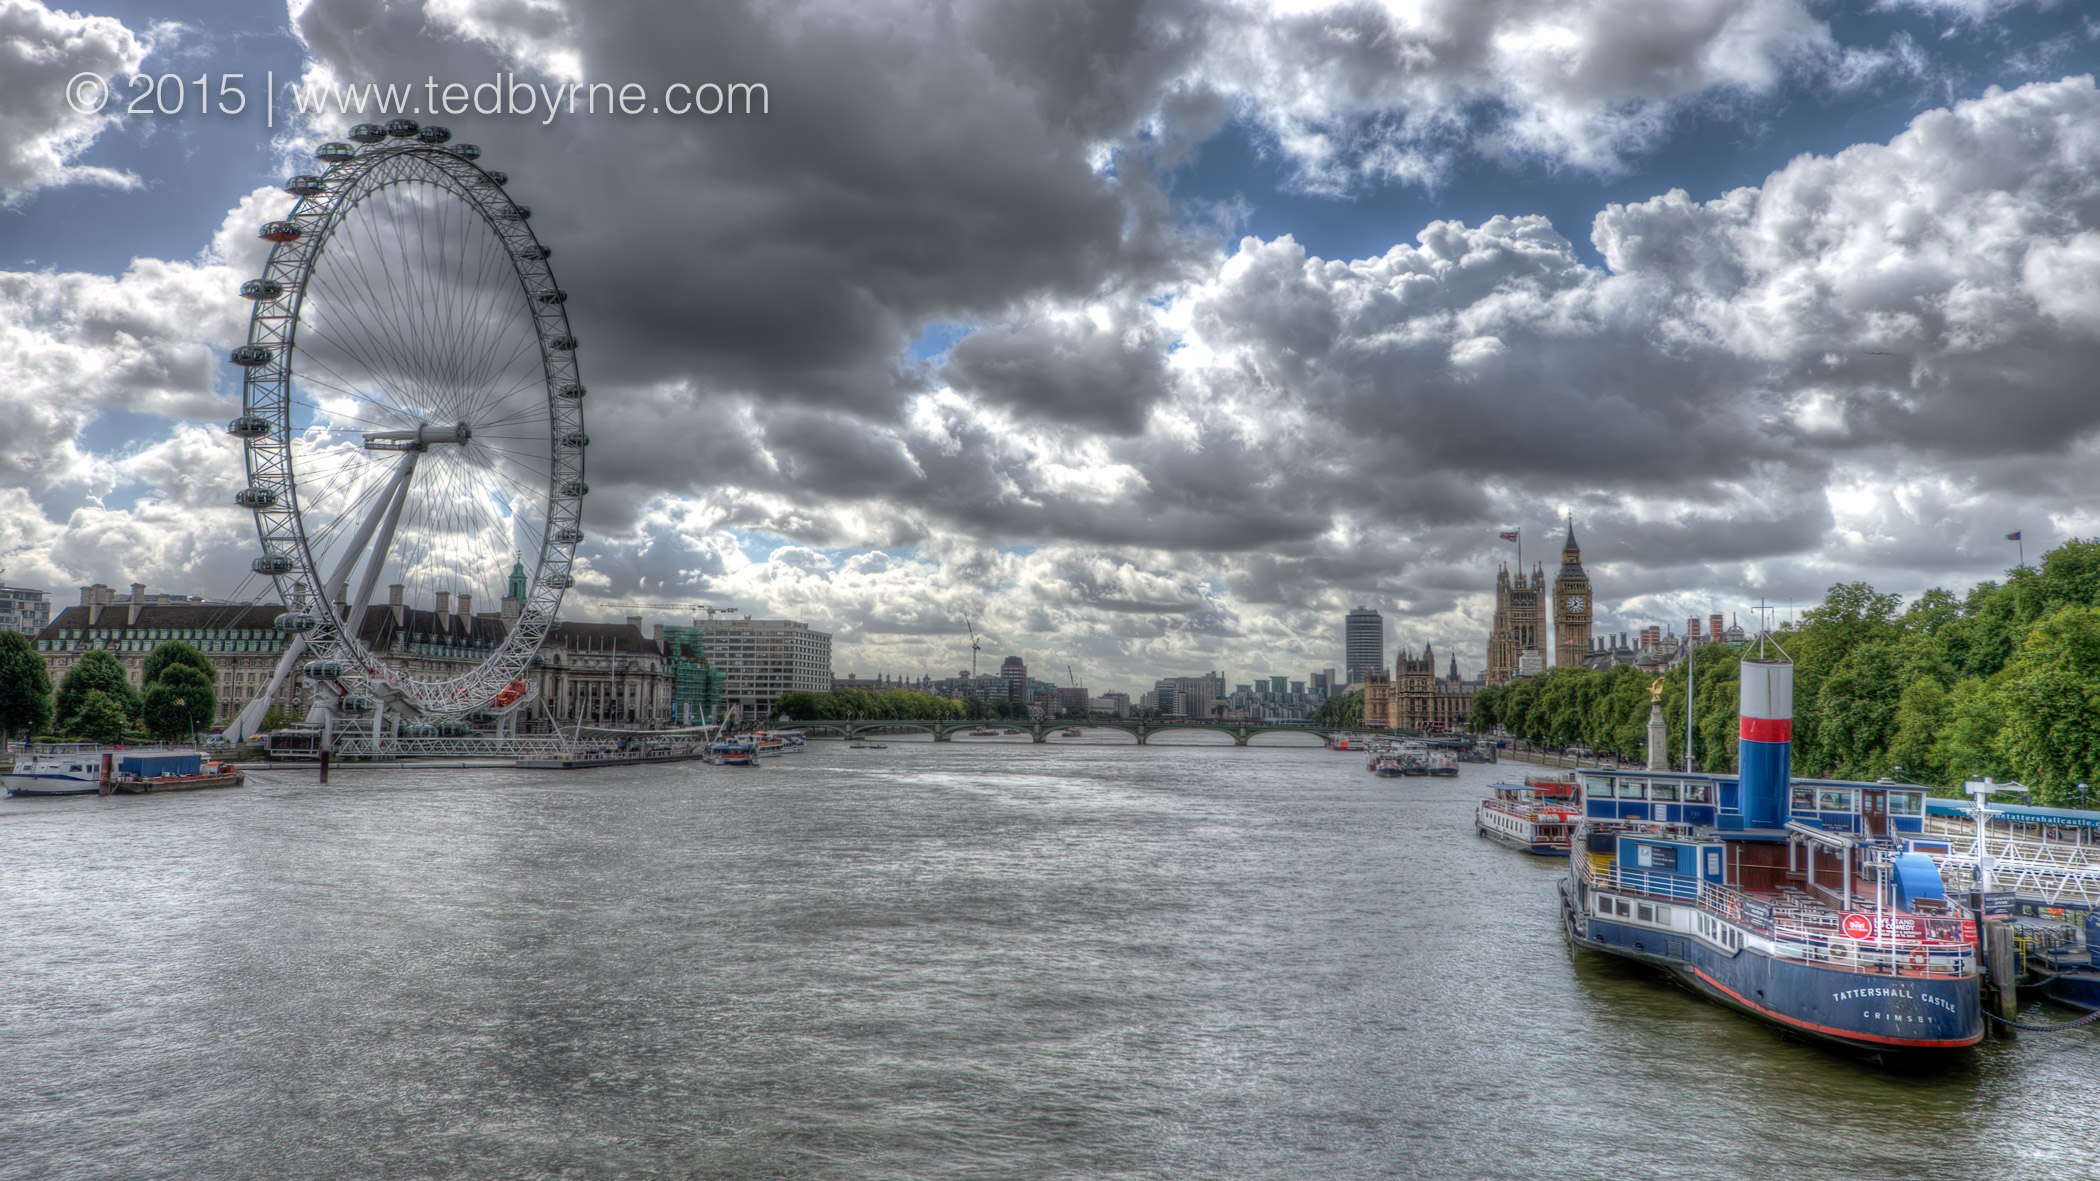 Thames in London, England